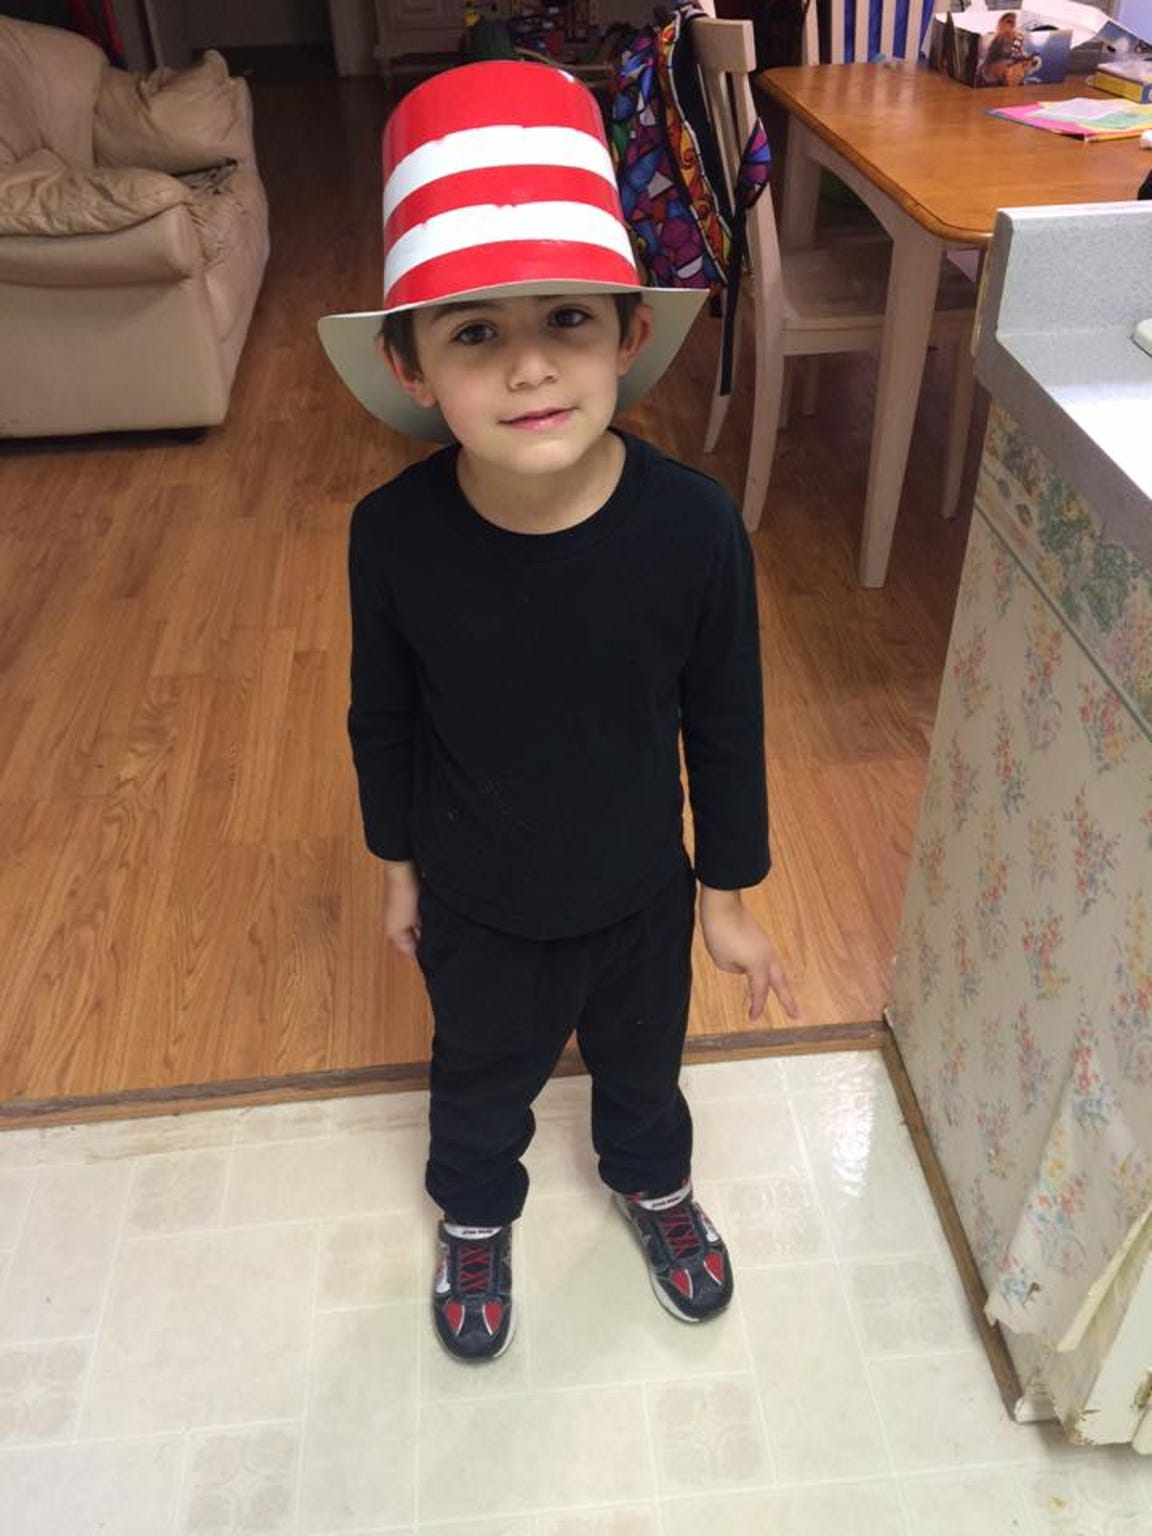 Gabriel wearing a hat for Dr. Seuss day made by his